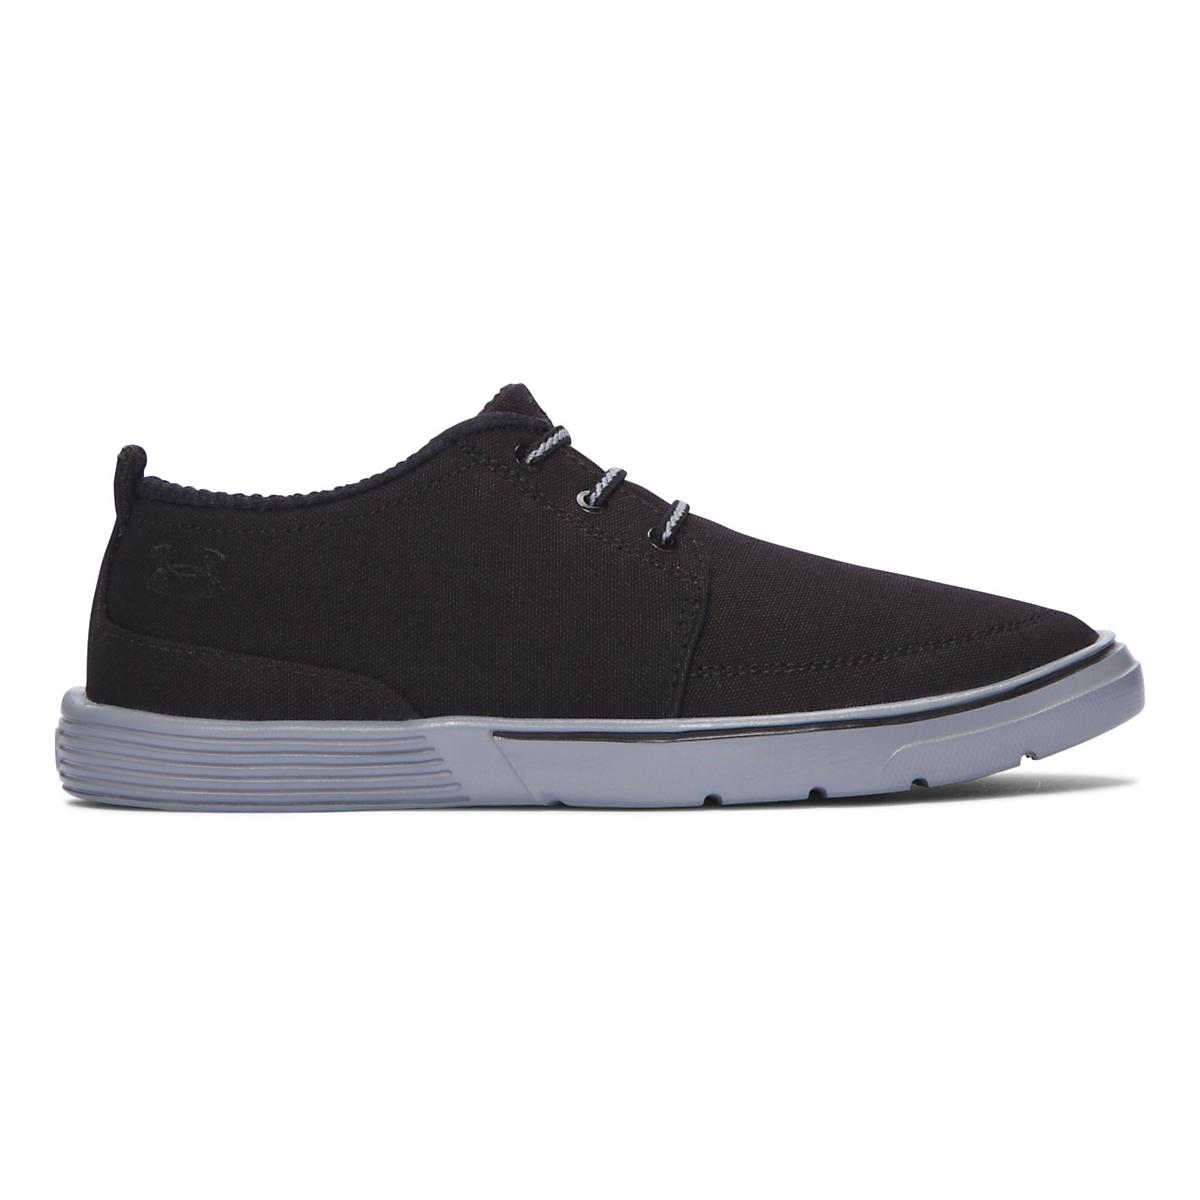 b00f4334c1 Under Armour Street Encounter III Casual Shoe